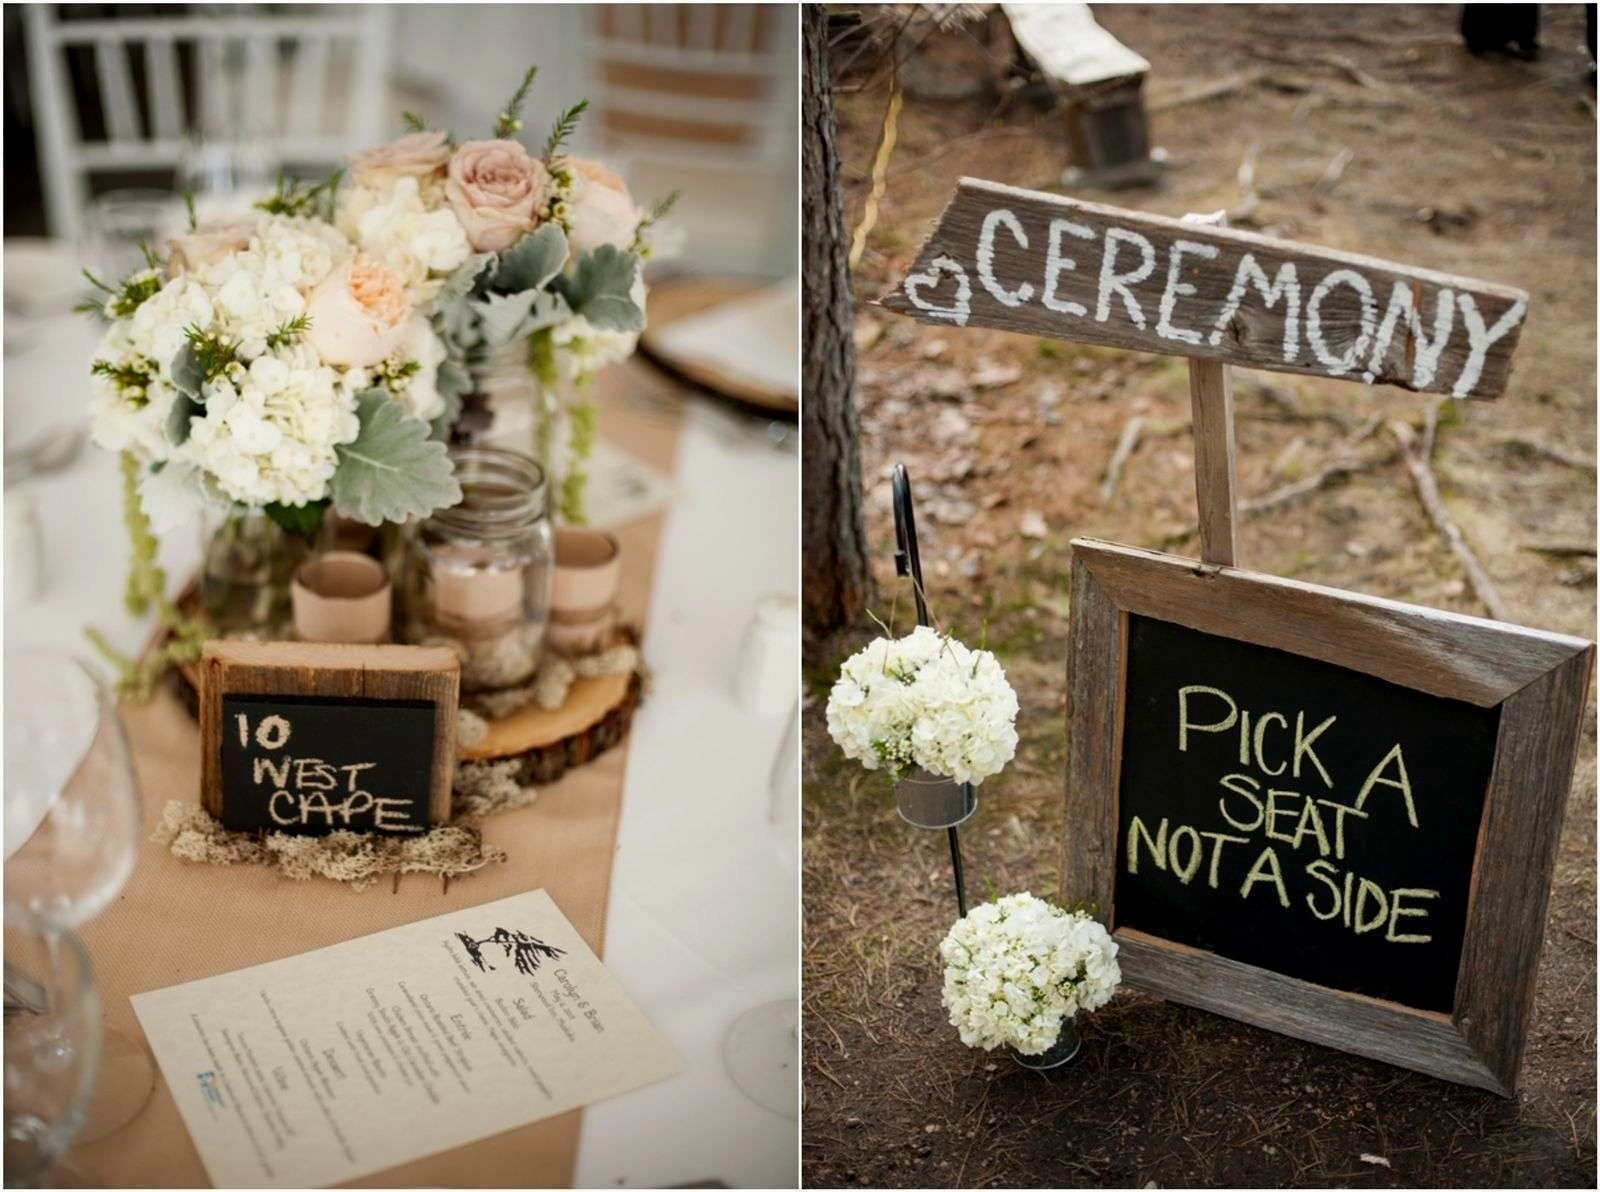 10 Attractive Wedding Ideas For Summer On A Budget country wedding ideas for summer on a budget decorating of party 2020